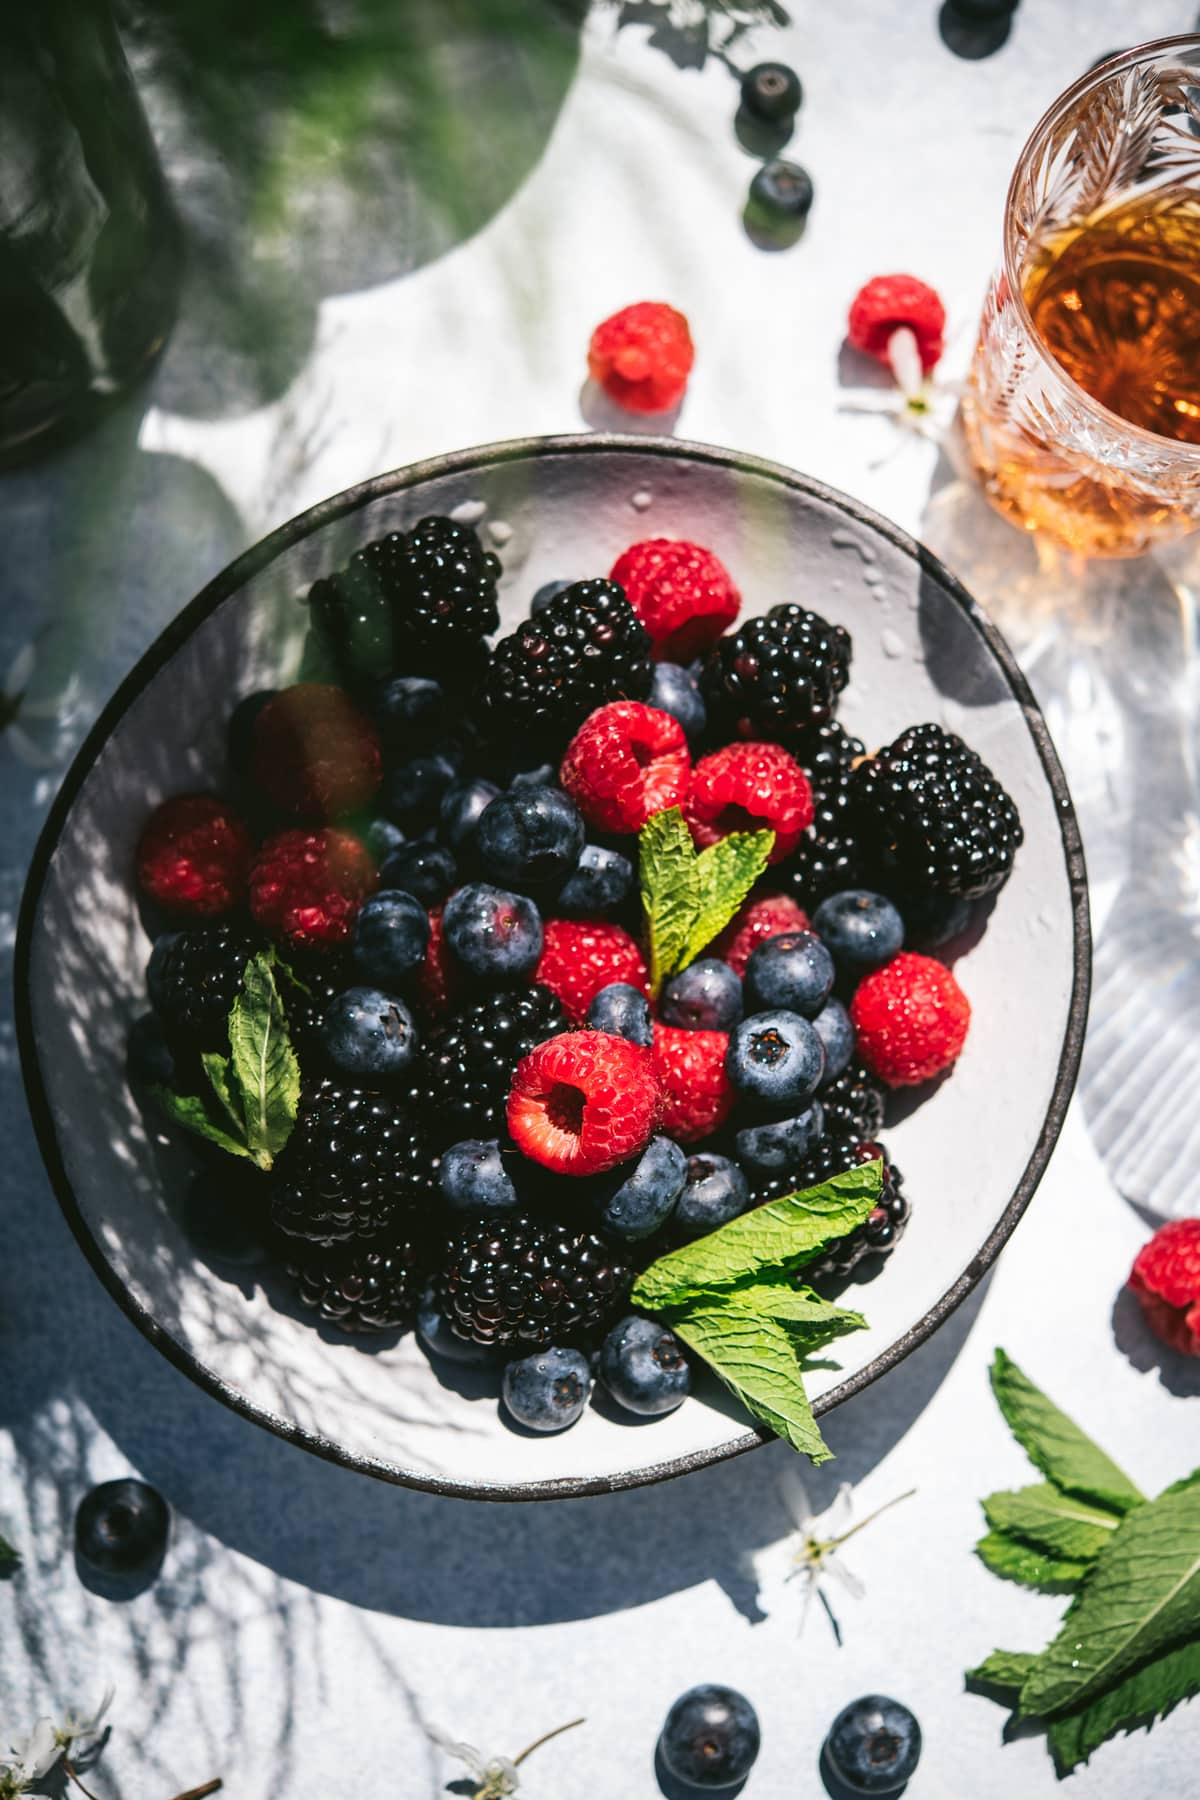 overhead view of berries in a bowl